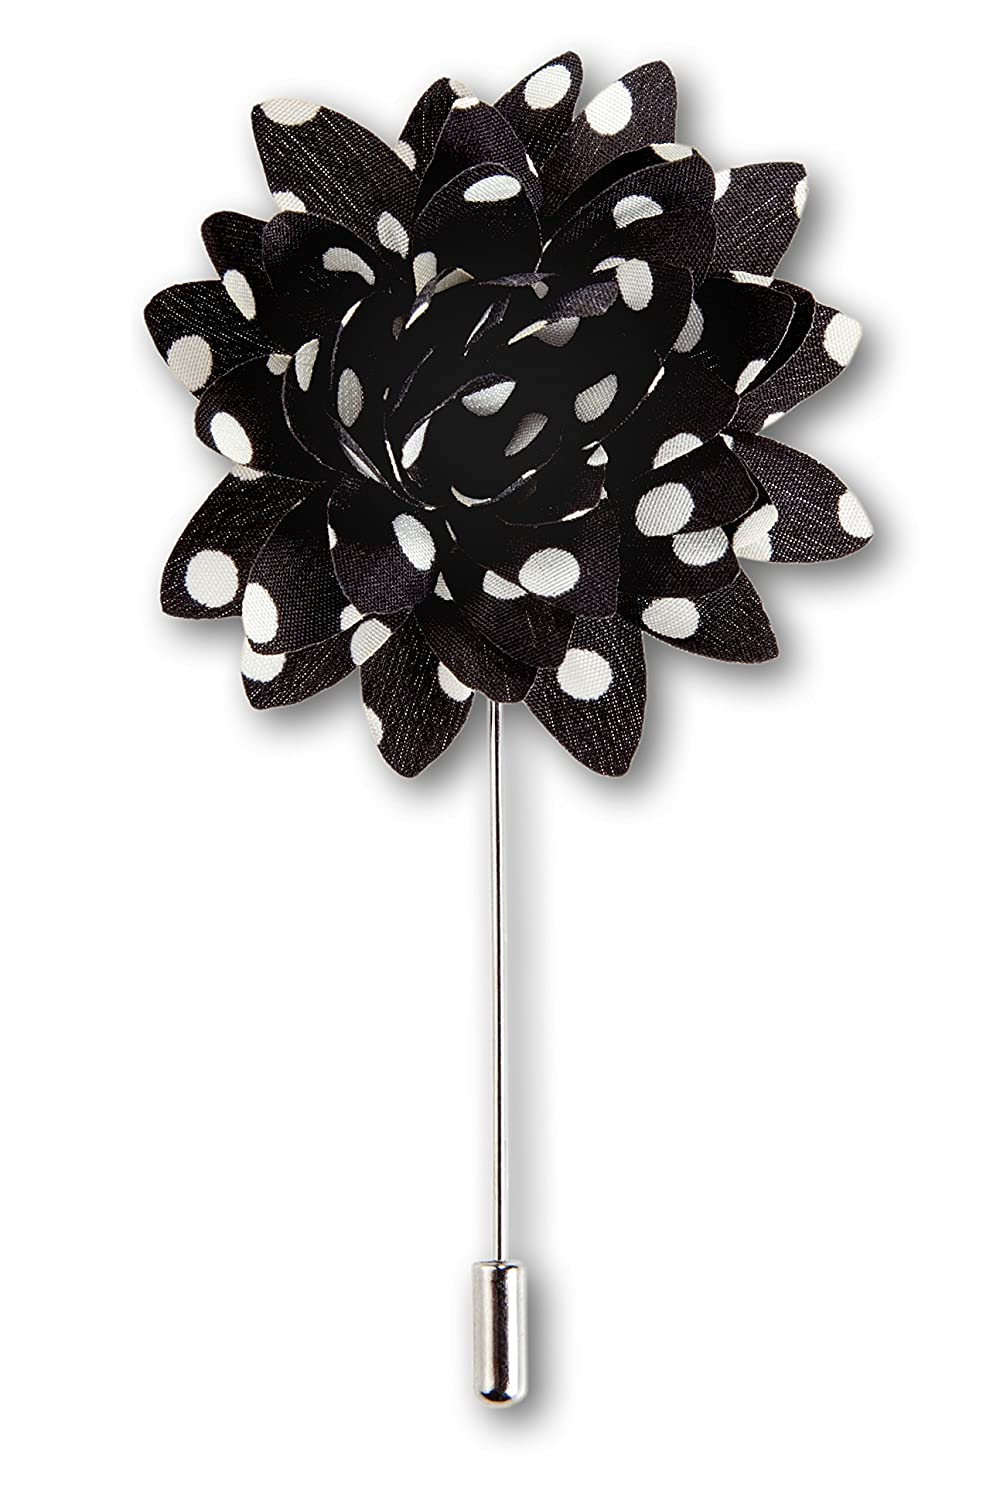 7dddfb54693d Amazon.com: Men's Lapel Flower Handmade Boutonniere Pin for Suit - Polka Dot  Mums (Black): Clothing